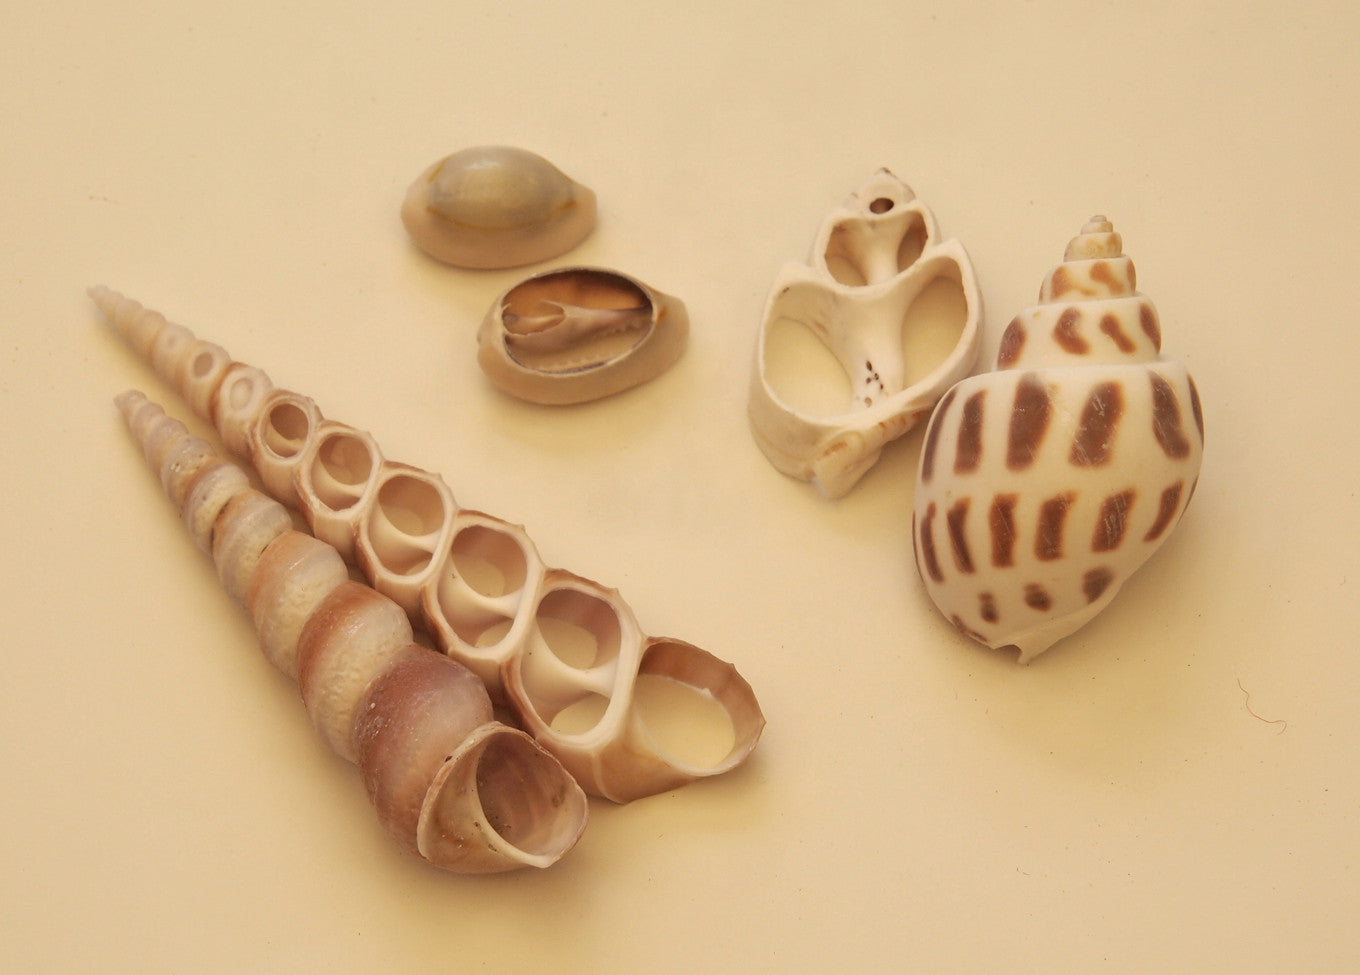 Shell Dissection Set